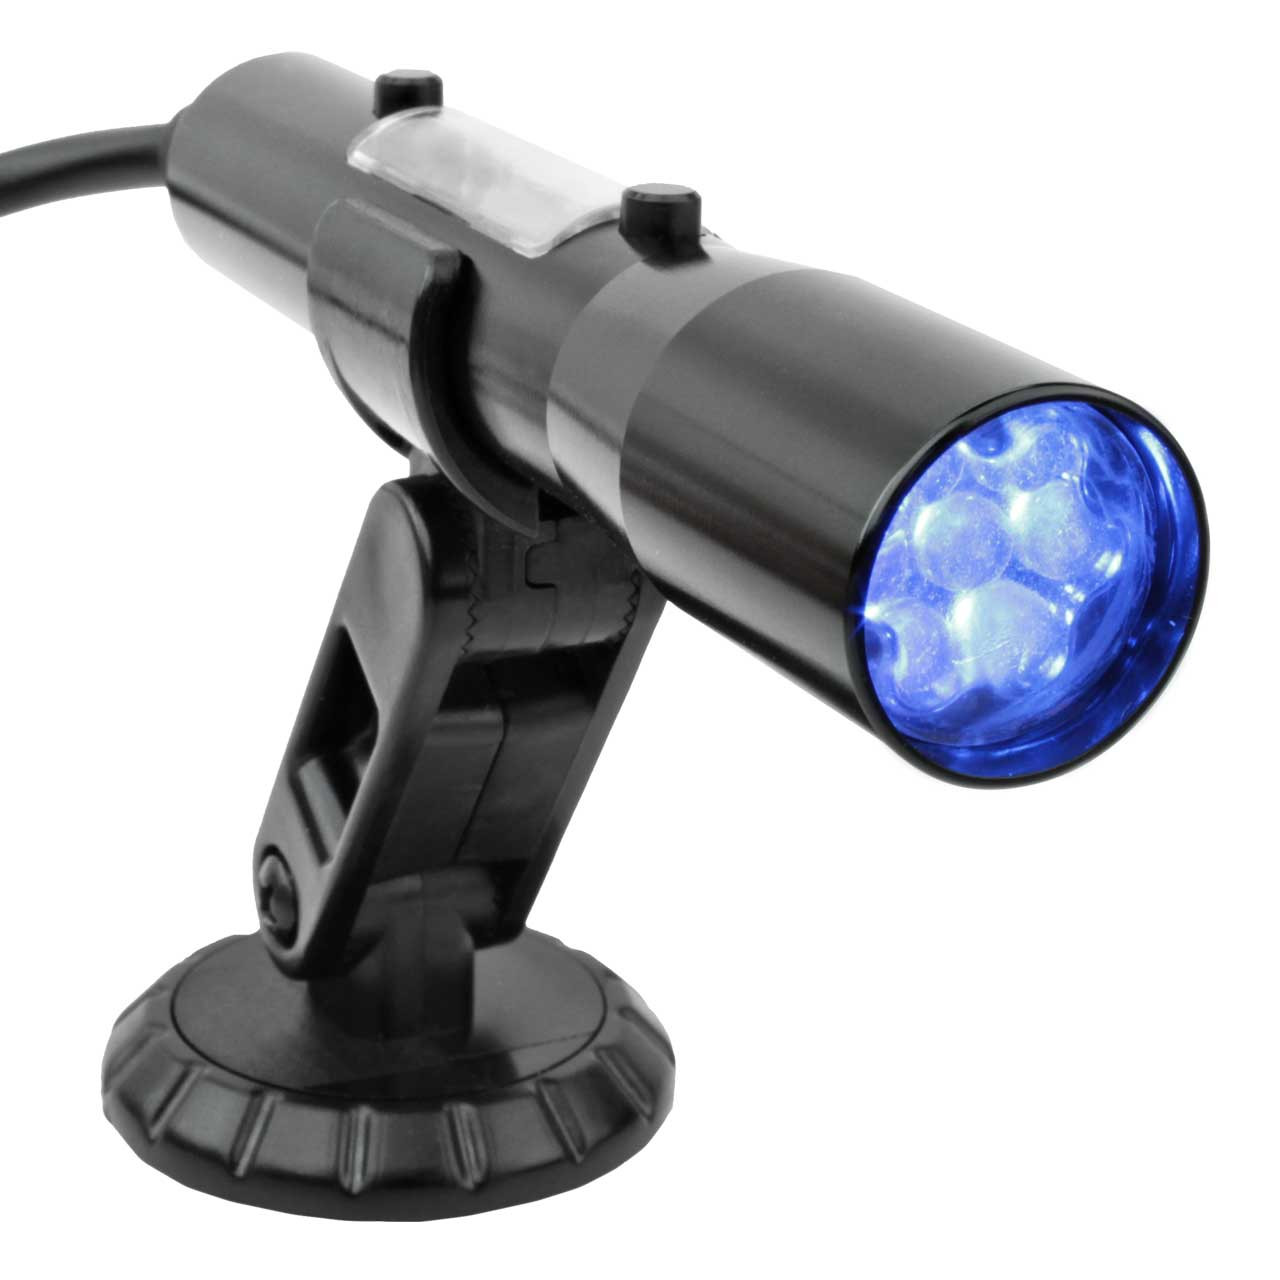 SST-MAX OBDII Shift Light Blue LEDs- Black Tube (Compatible with 2008 and newer vehicles)